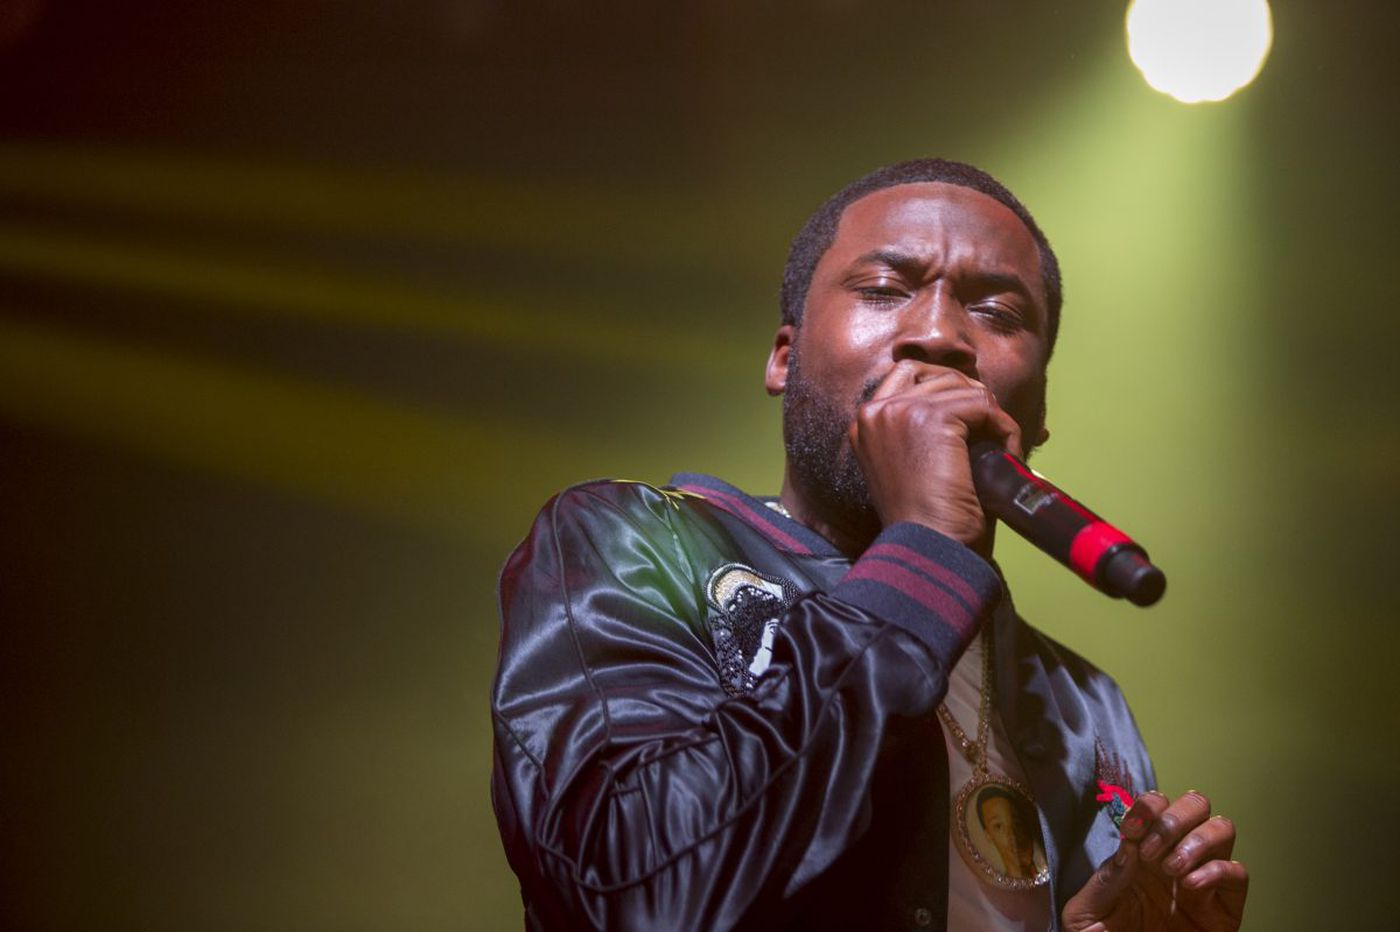 Streams of Meek Mill's 'Dreams and Nightmares' spike in the lead-up to the Super Bowl